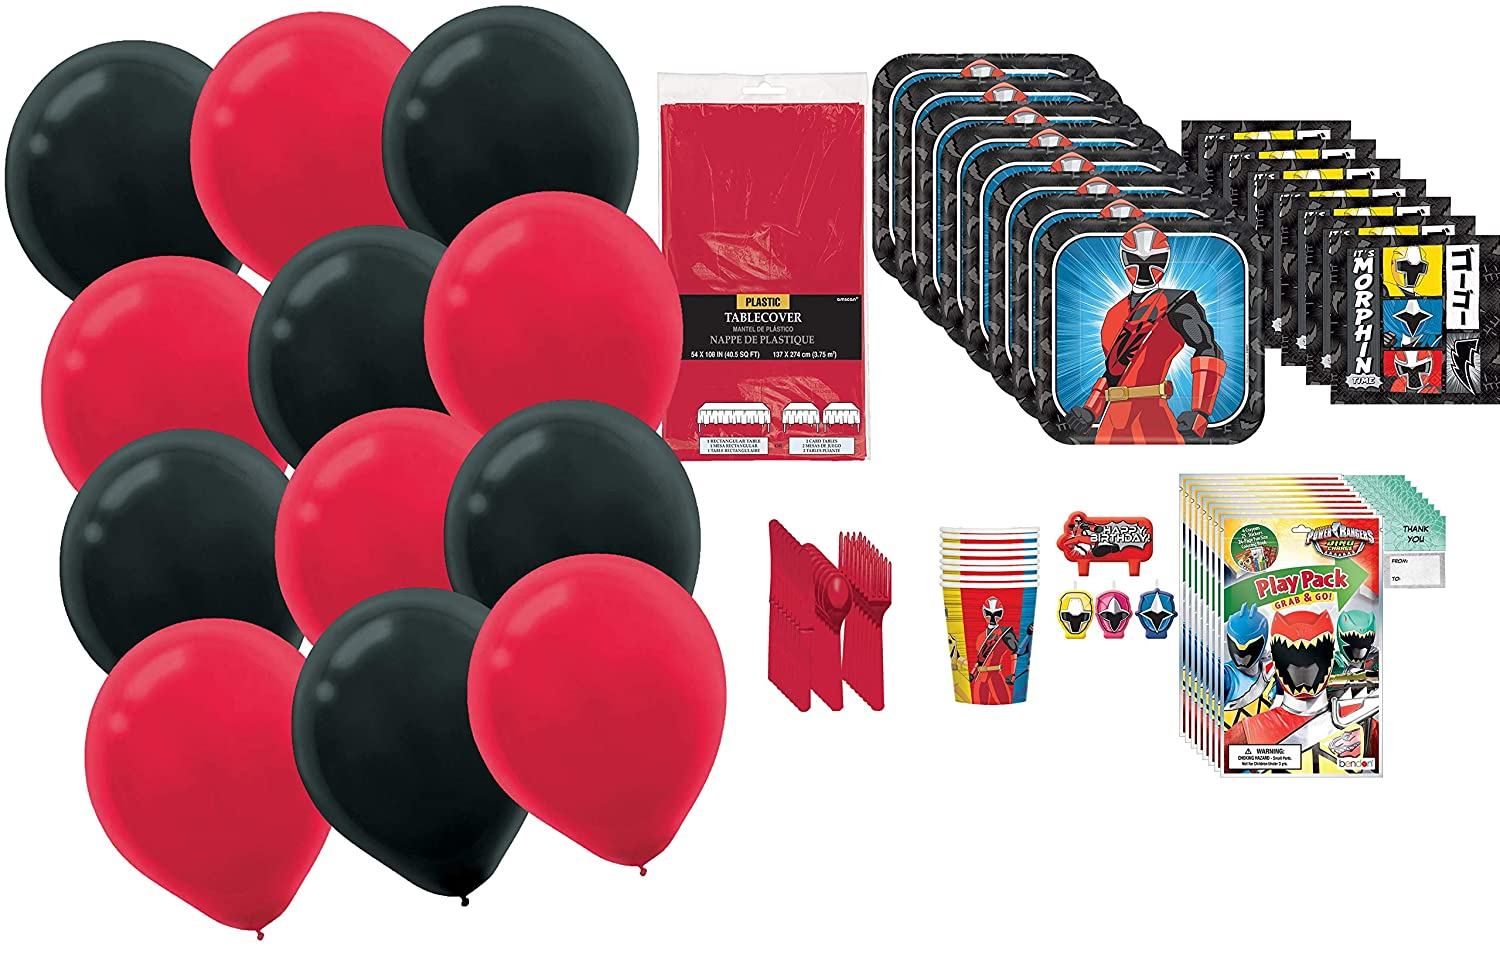 """balloons and /""""Thank you/"""" cards for your guests By Rainforest Products Cups Power Rangers Birthday MEGA Party Supply Pack for 8 with Grab and Go Play Packs Party Favors knives Tablecover Napkins spoons forks Candles Plates"""